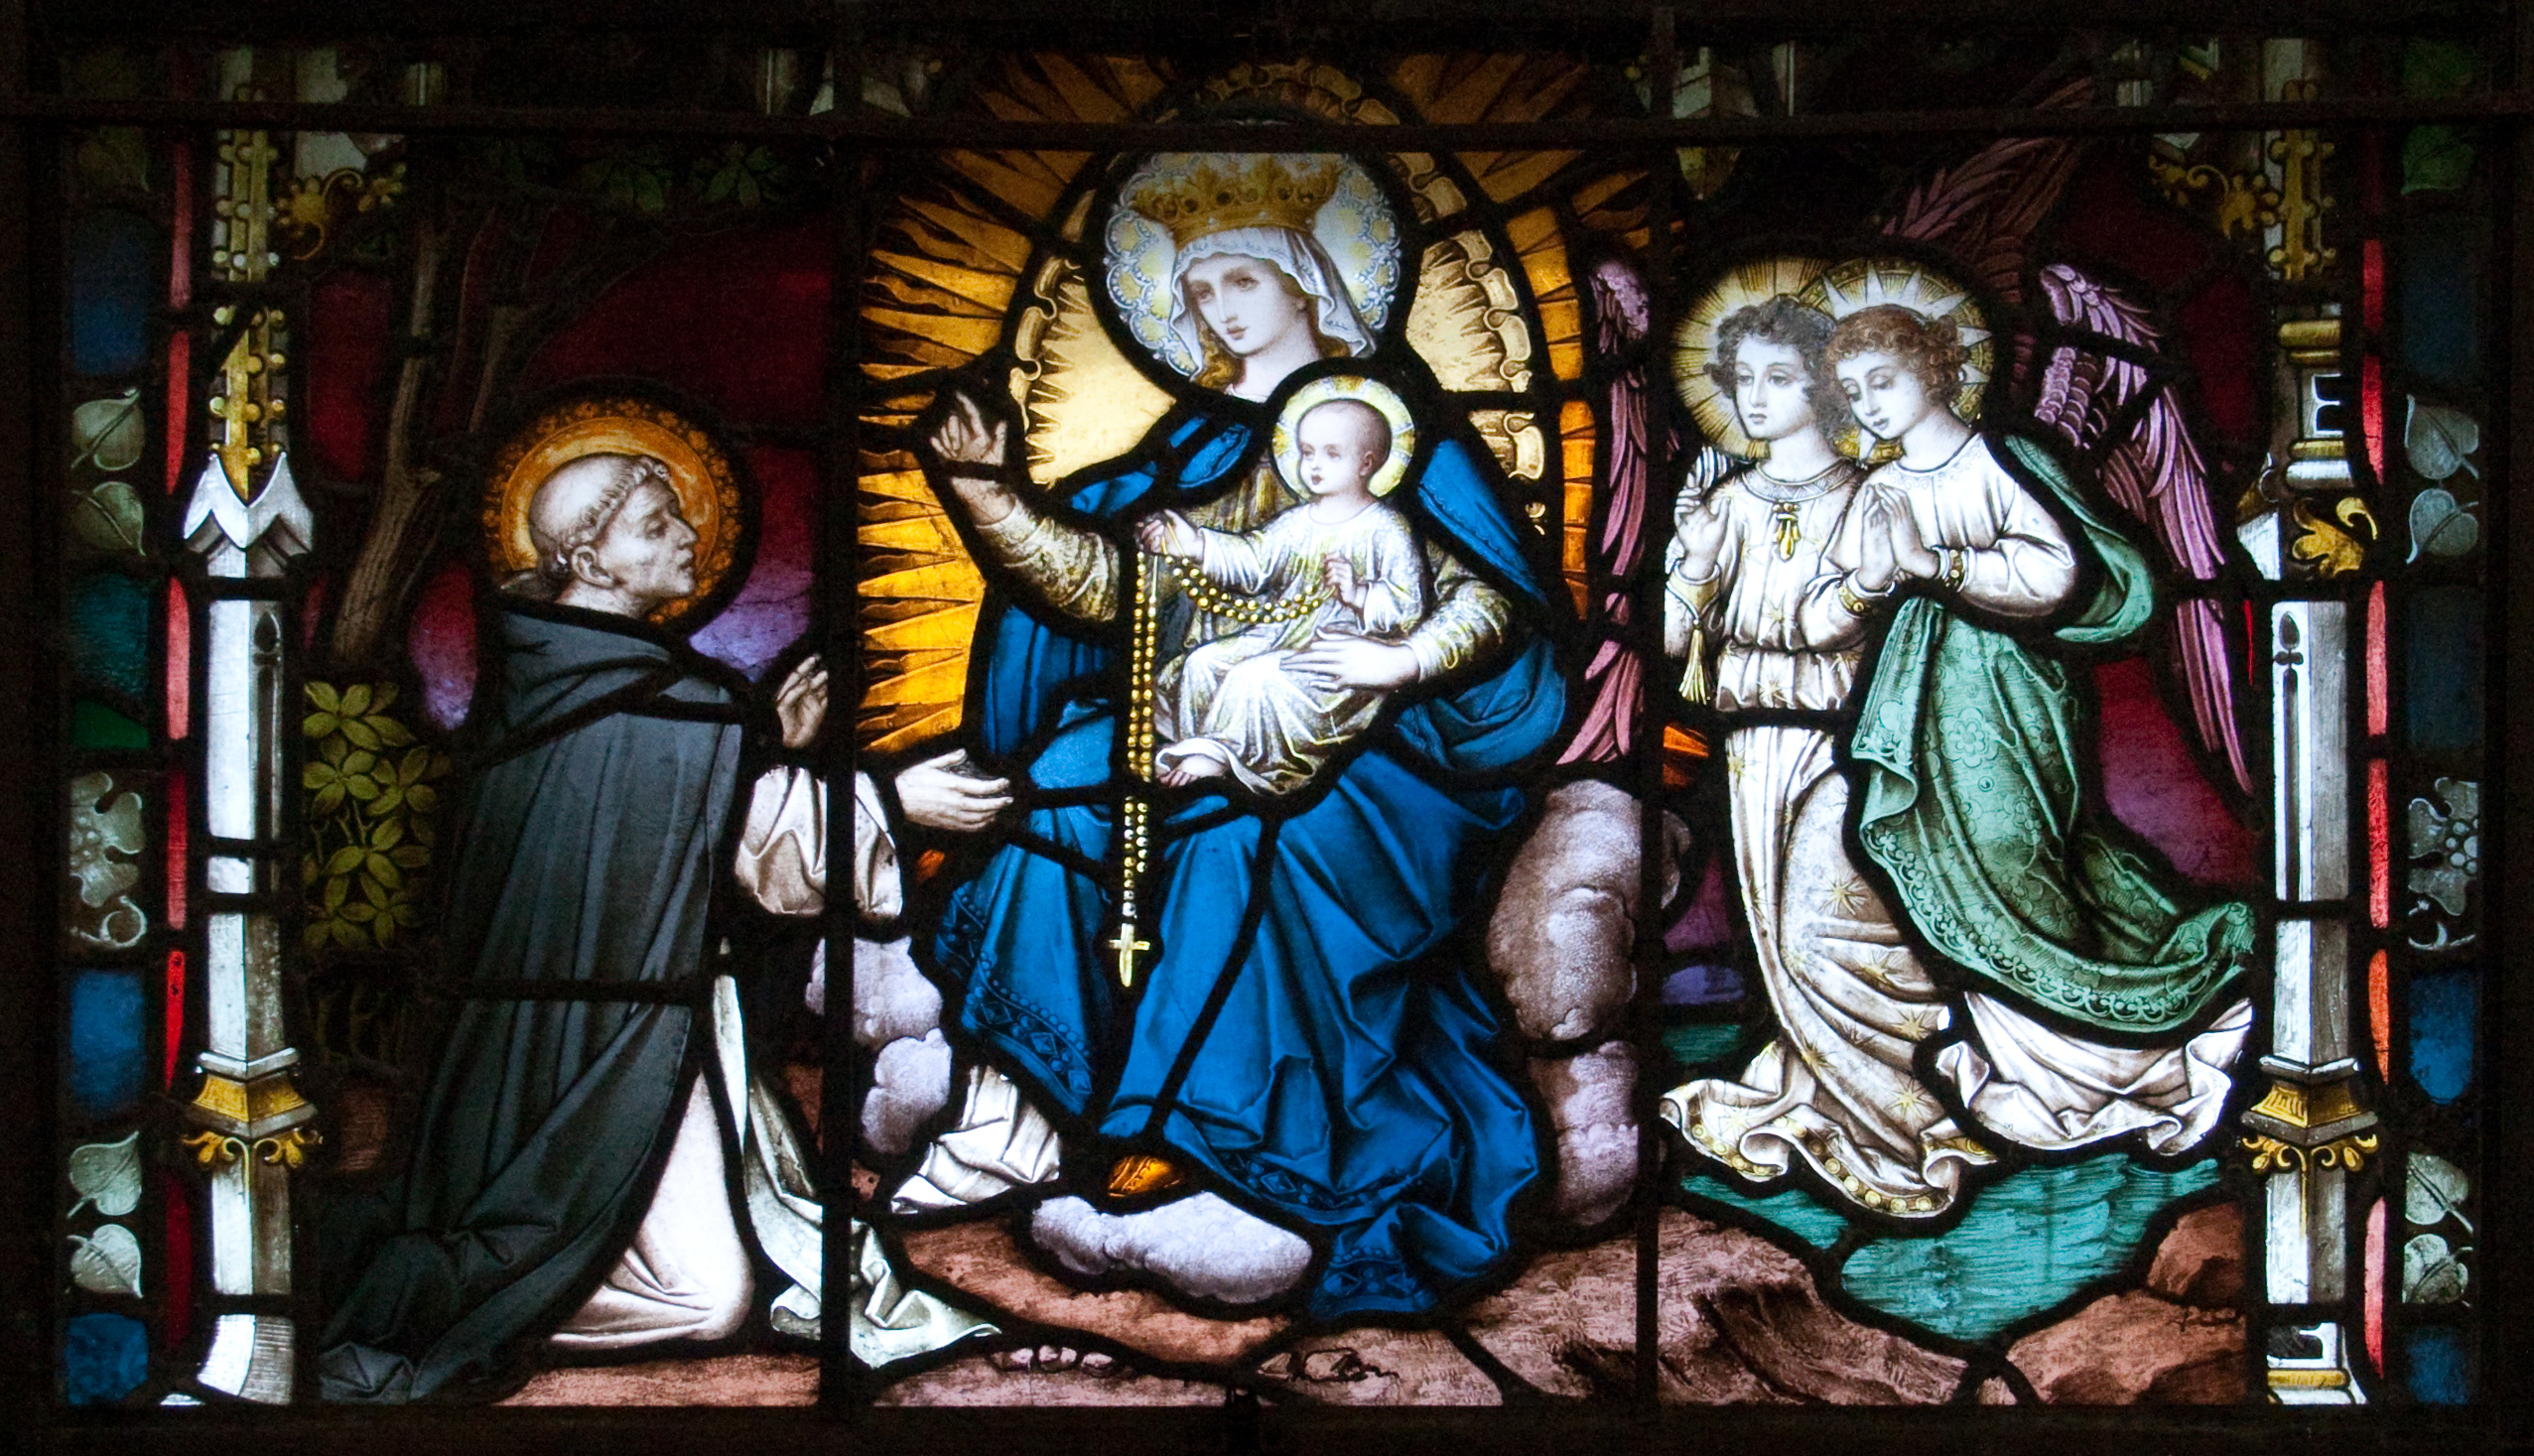 Carlow_Cathedral_St_Dominic_Receives_the_Rosary_from_the_Virgin_Mary_2009_09_03